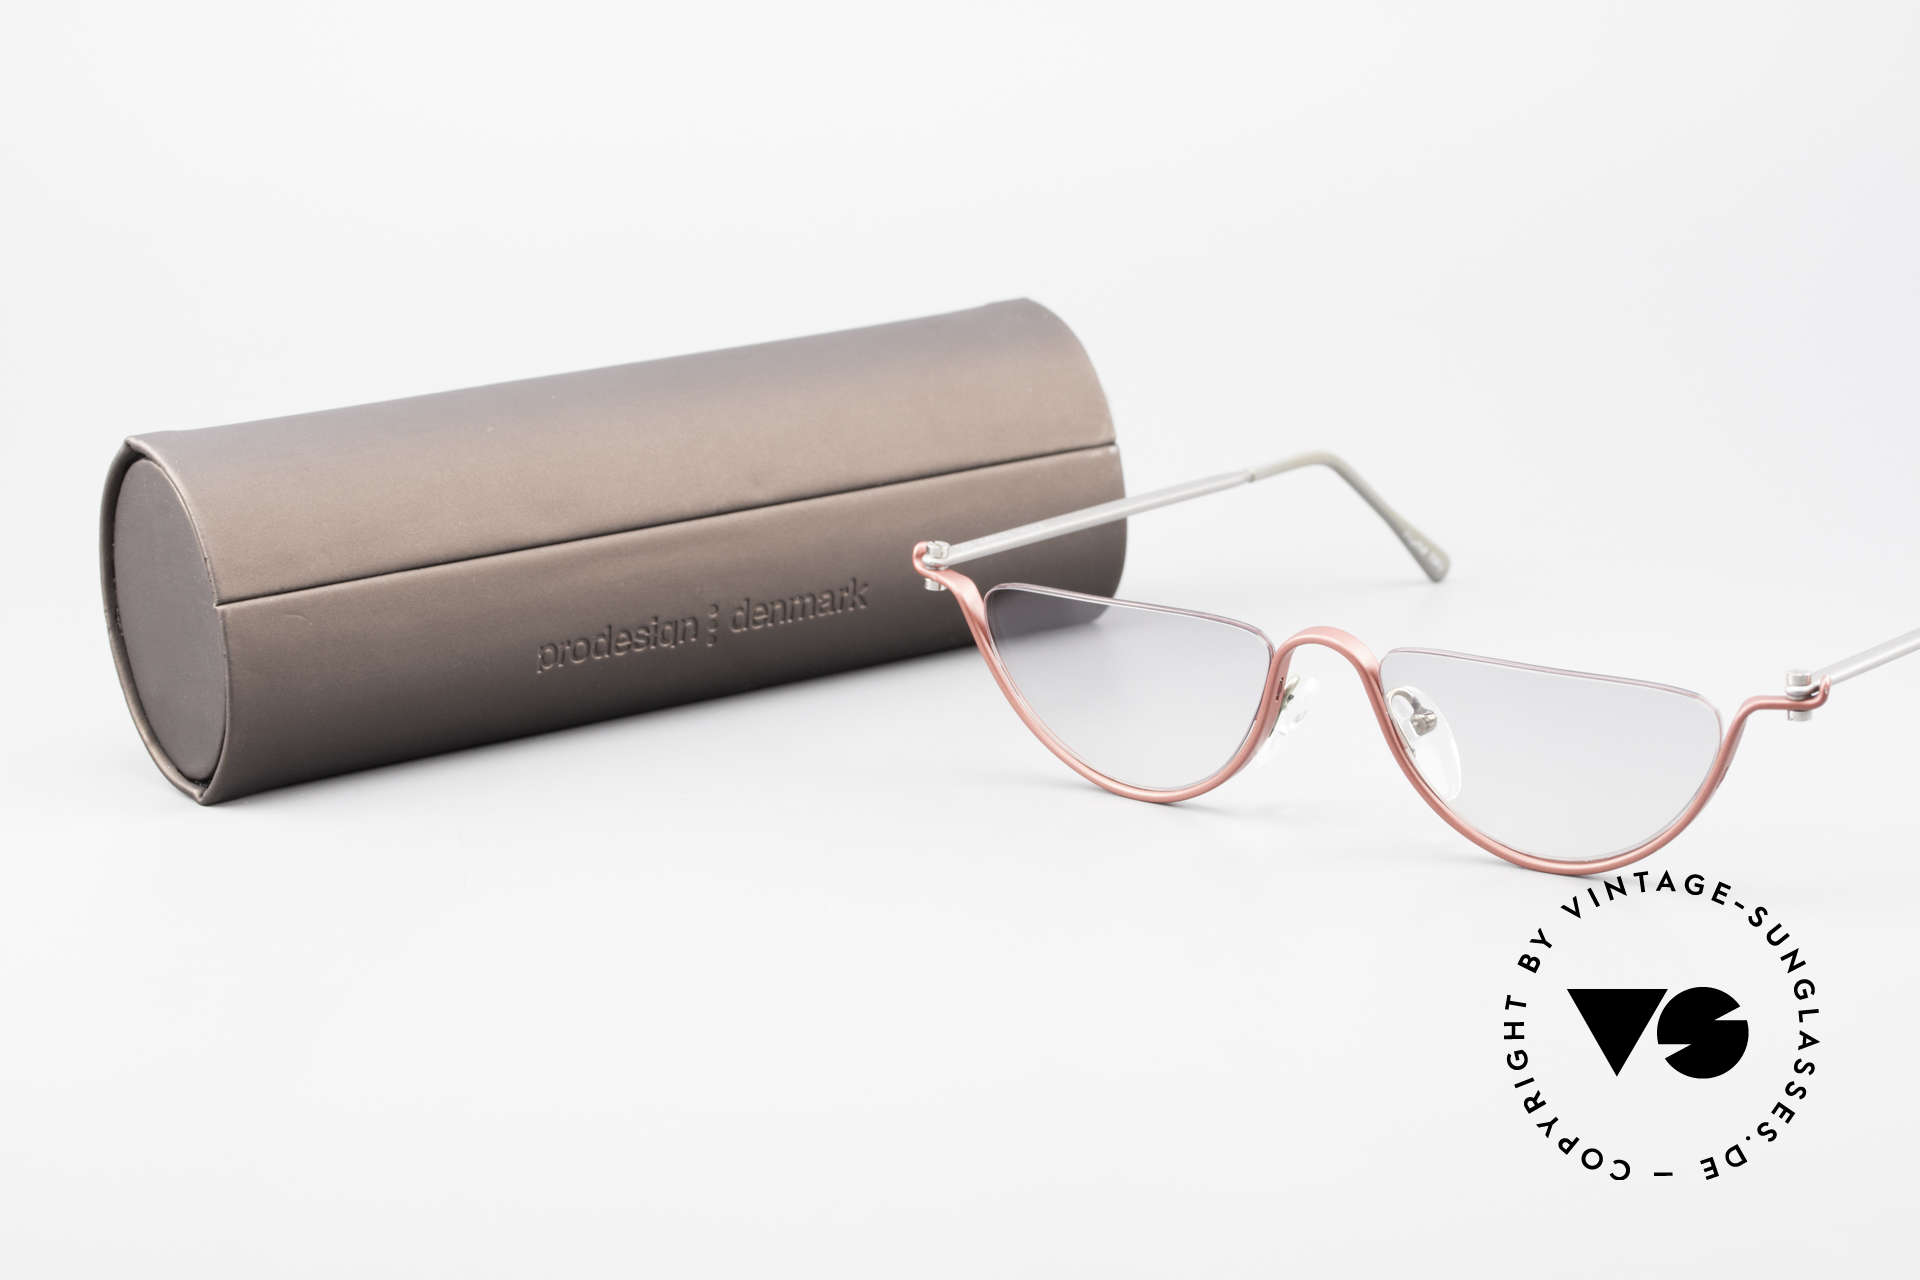 ProDesign No11 Gail Spence Design Sunglasses, unworn single item (like all our famous movie frames), Made for Women